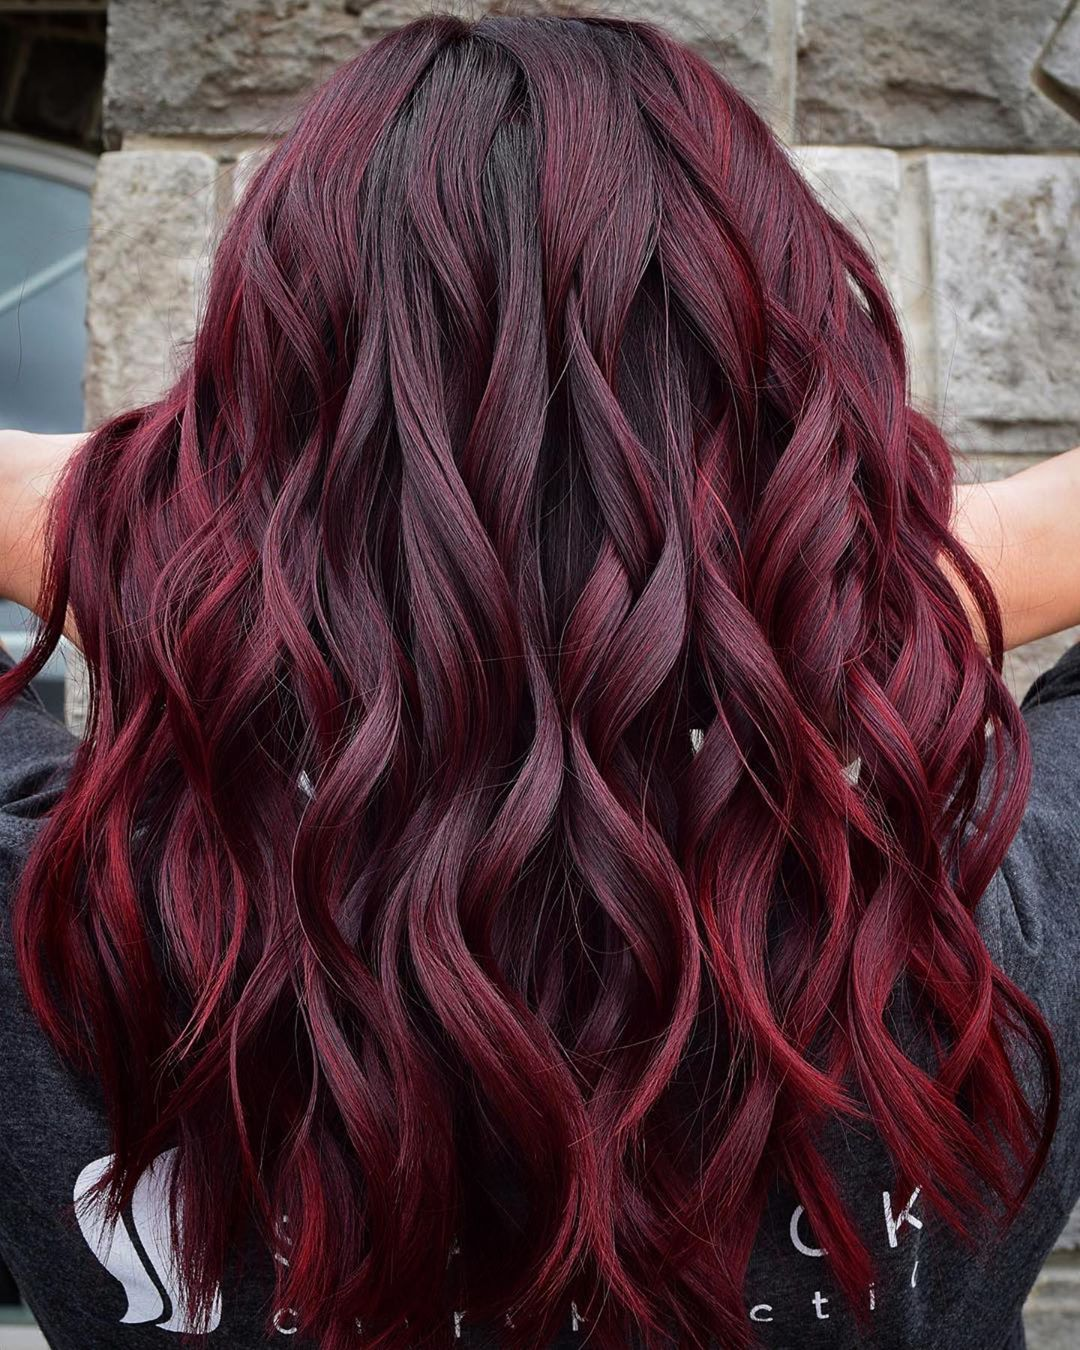 Dark Burgundy Red Hair Color